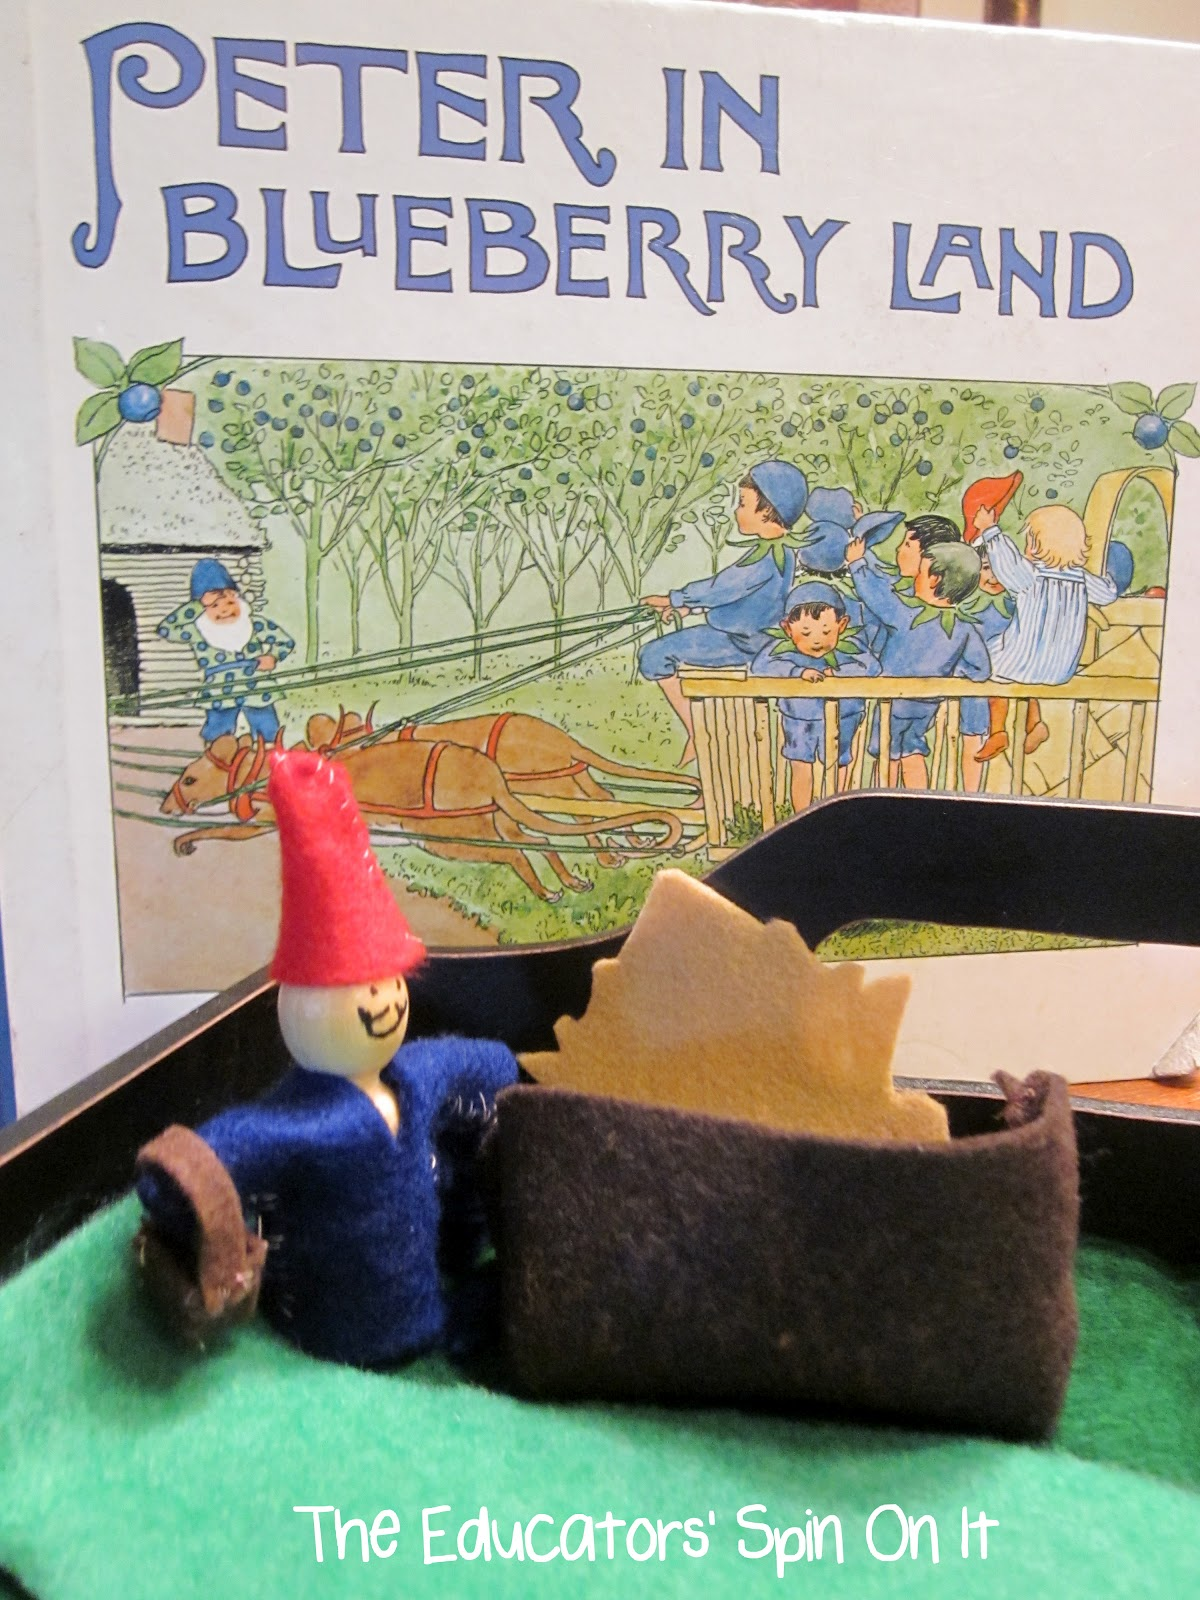 The Educators Spin On It Our Sewing Adventure With Peter In Blueberry Land By Elsa Beskow